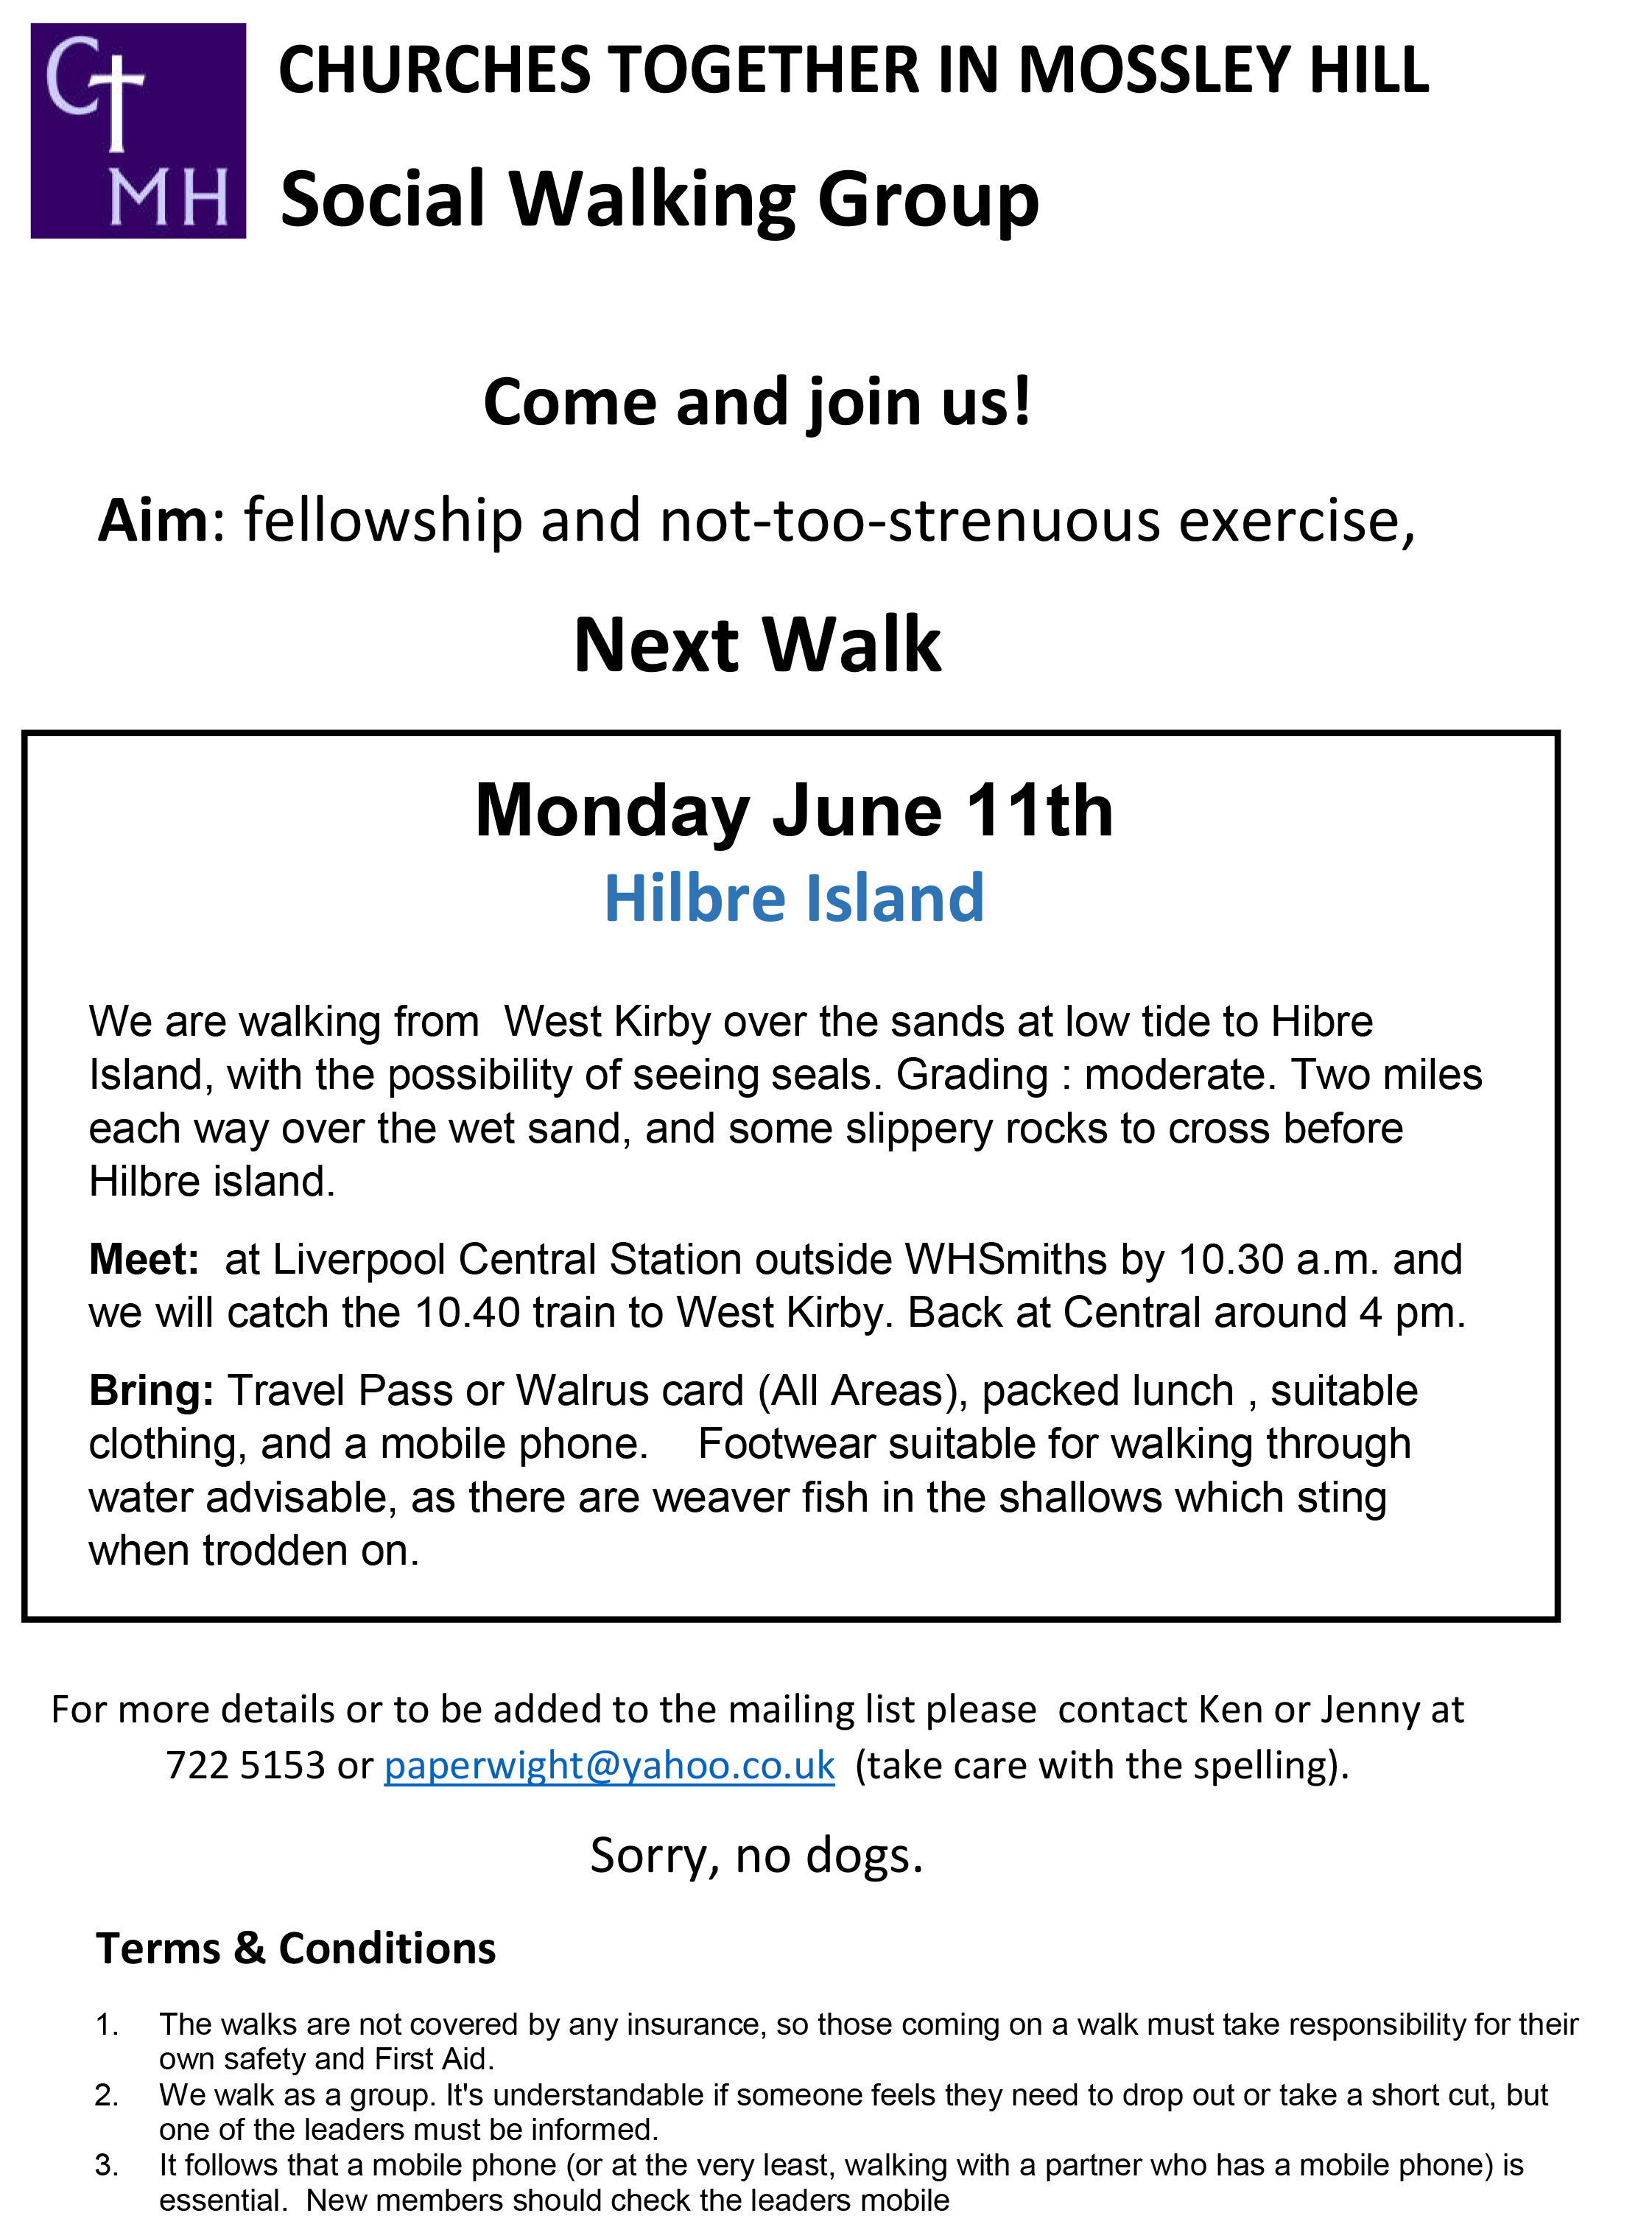 CTMH Social Walking Group June